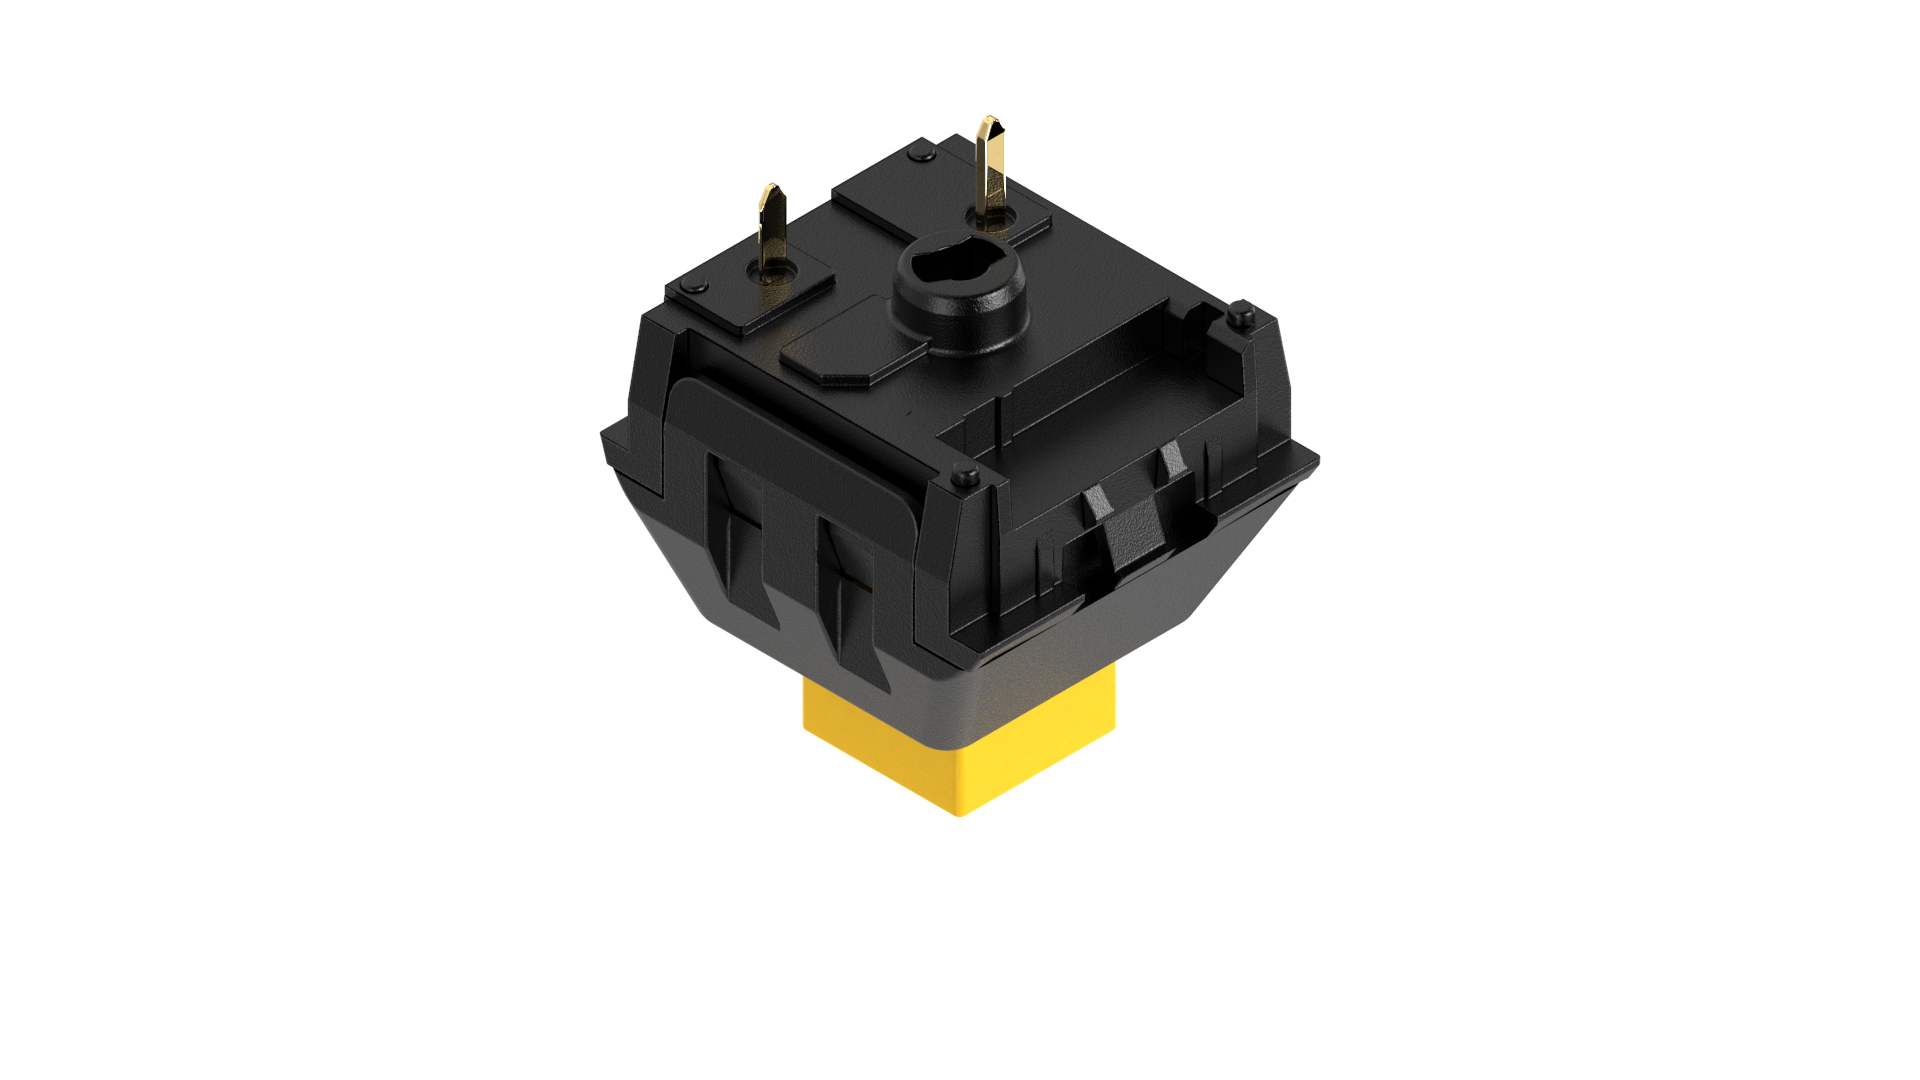 Pictured: Underside of a Kailh BOX switch, other switches such as ones from Cherry or Gateron will look different but the pin location will remain the same.